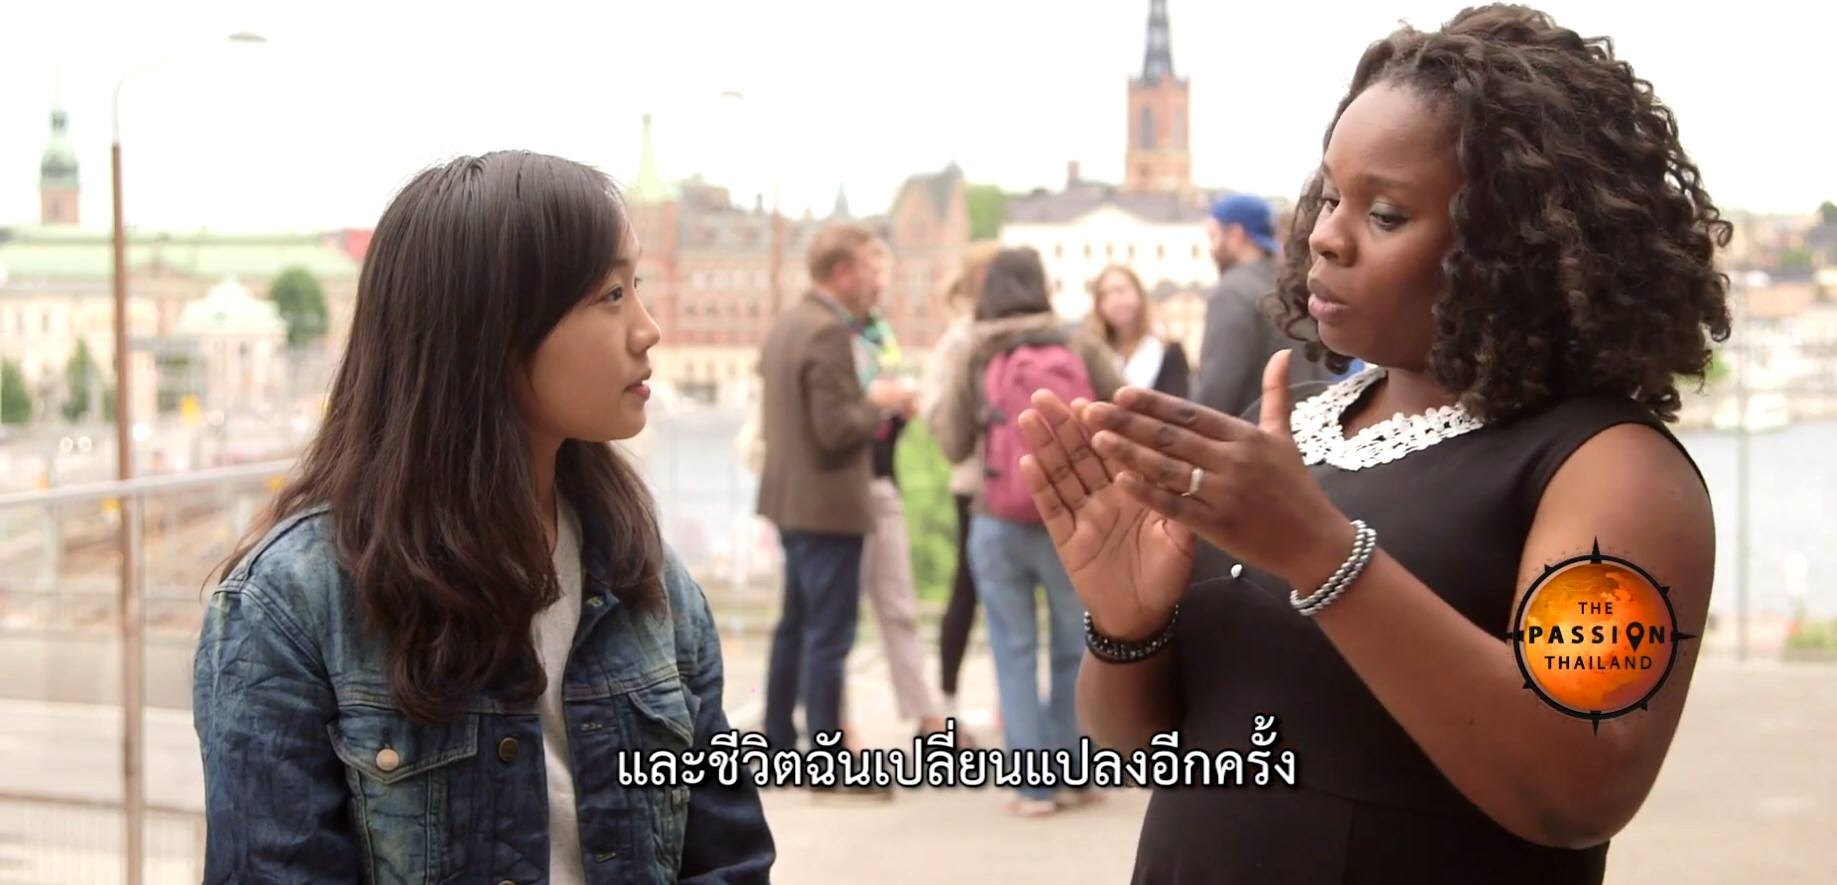 Video: What is your passion – Sharing mine on TV in Thailand